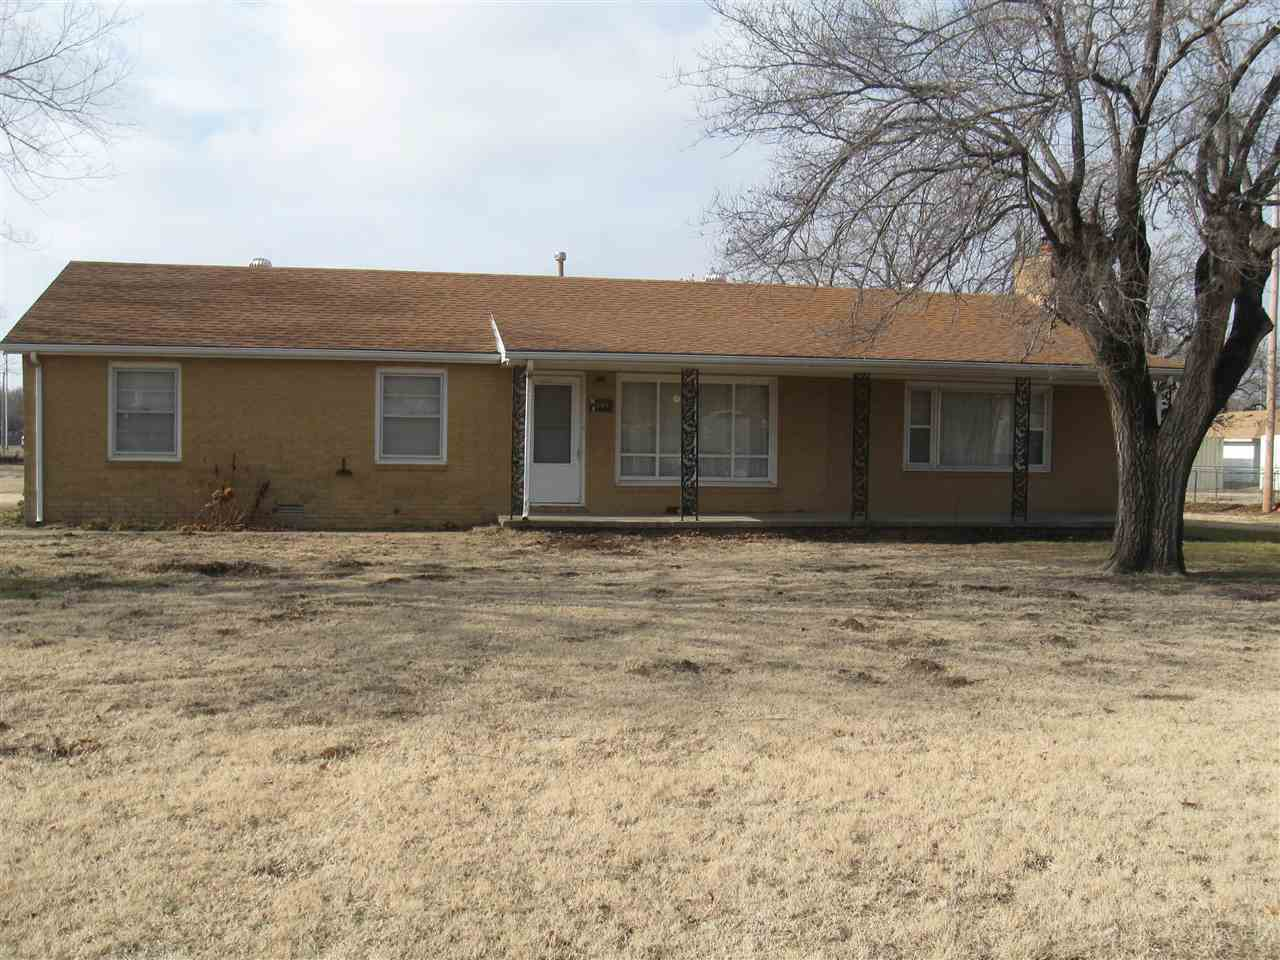 Come see this nice westside full brick ranch home with 3 bedrooms and 2 baths.  This home sets on a